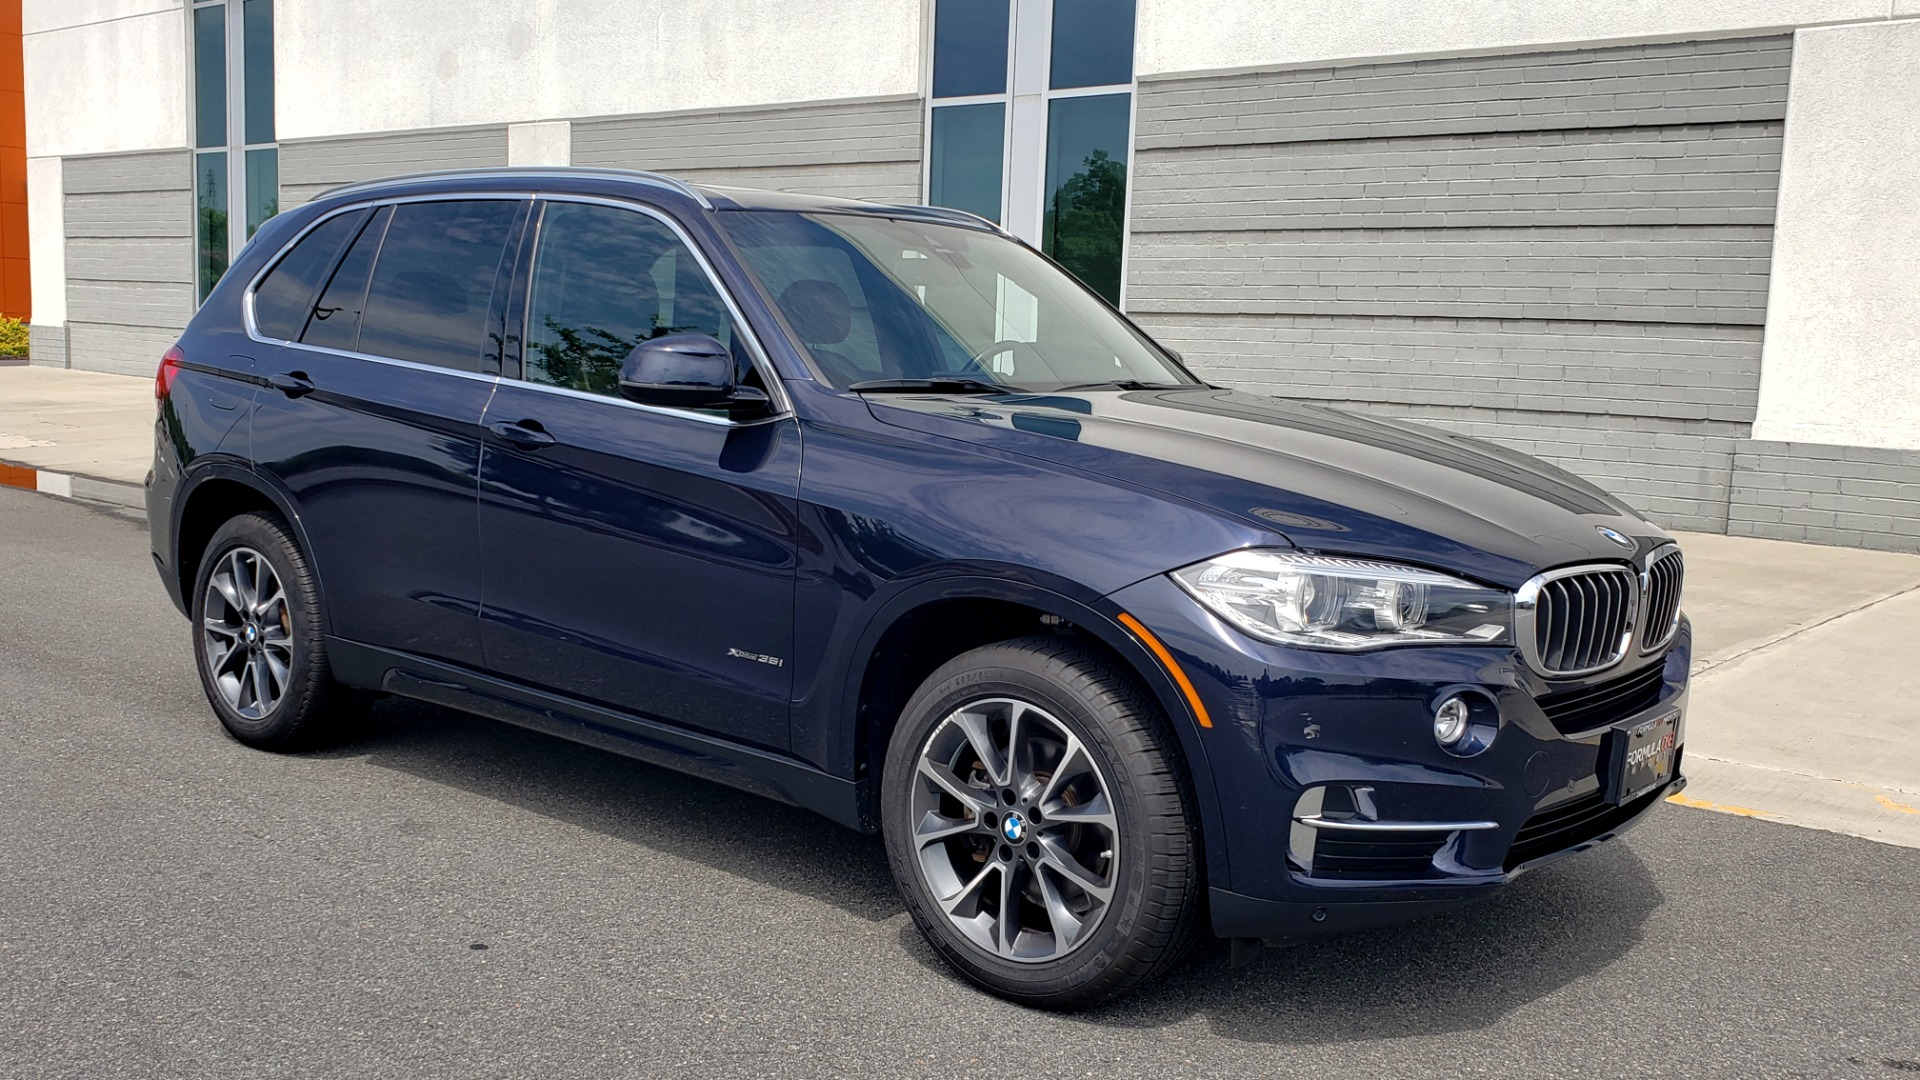 Used 2018 BMW X5 XDRIVE35I PREMIUM / LUXURY / DRVR ASST / HUD / LANE WARNING / REARVIEW for sale $43,695 at Formula Imports in Charlotte NC 28227 7